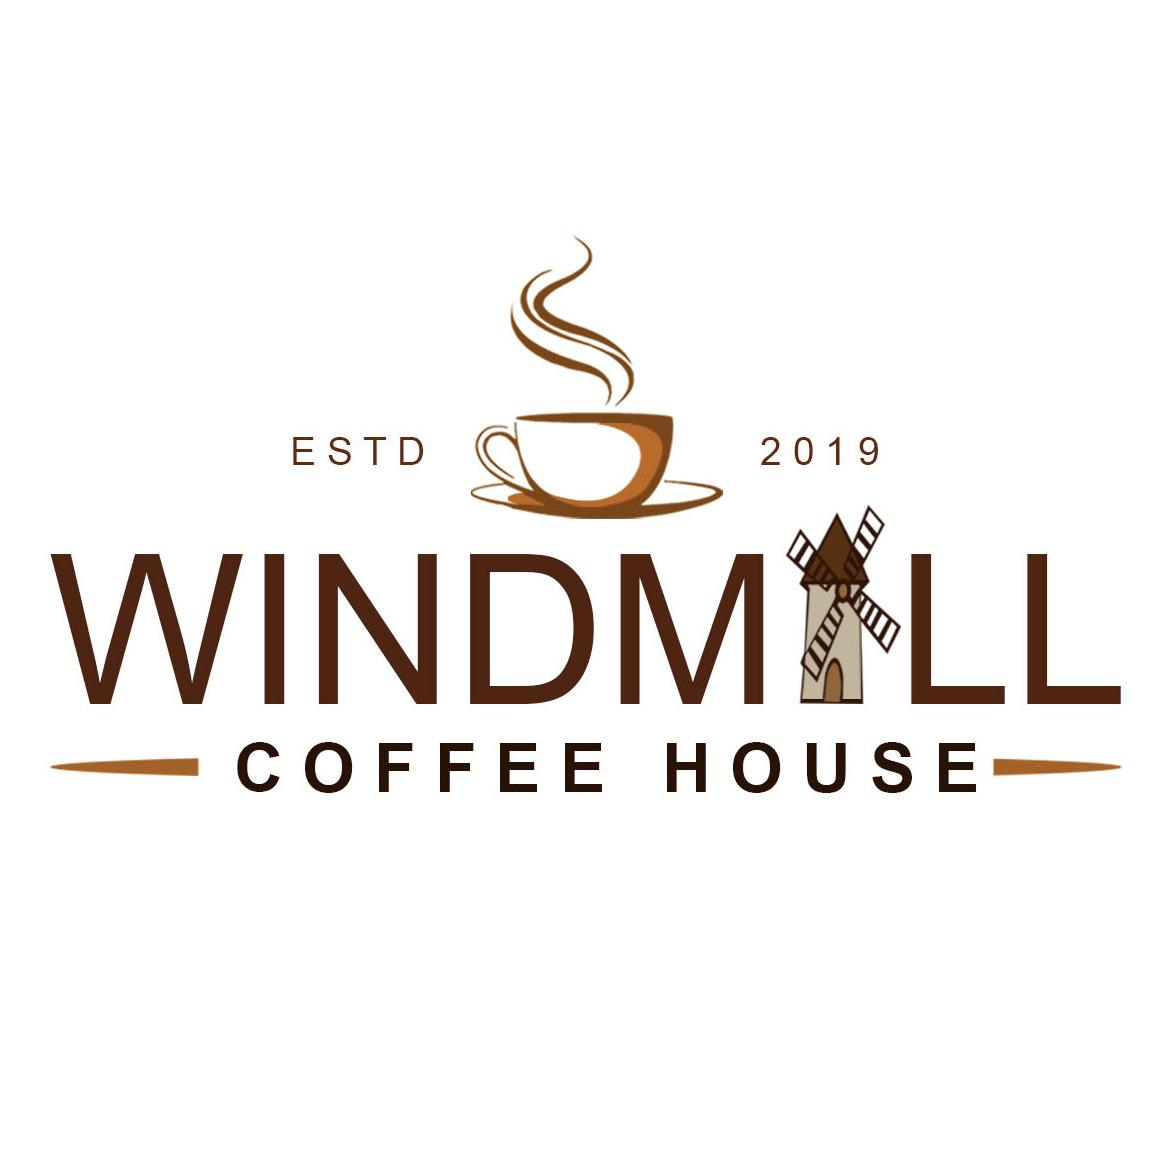 Windmill Coffee House